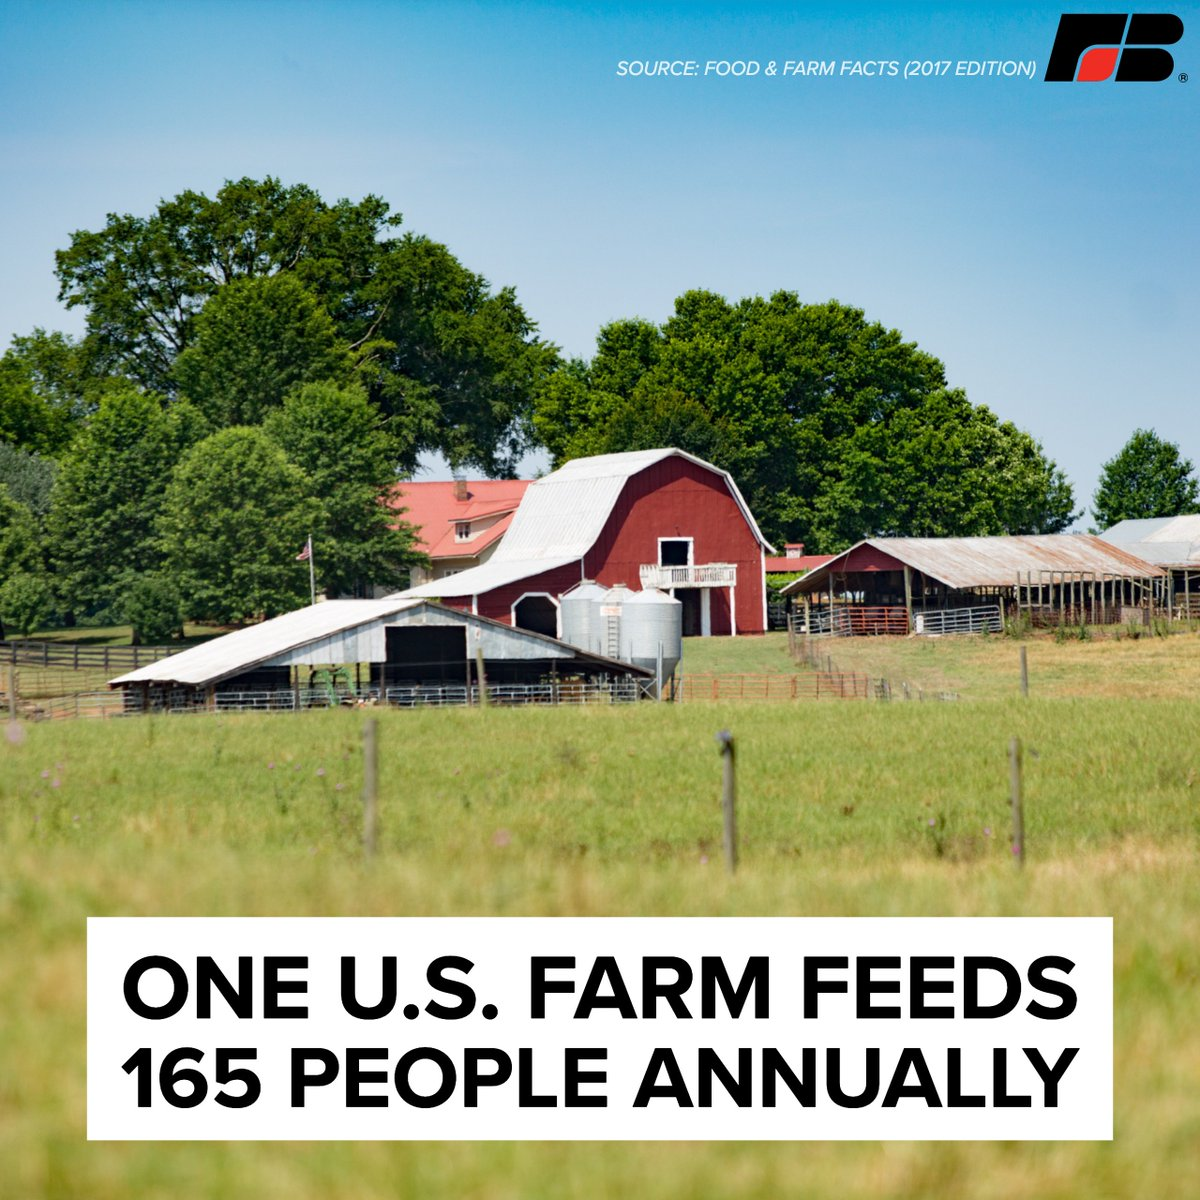 Happy National Ag Day! Farmers take pride in knowing that the work we do on our farms and ranches reaches far beyond our fencerows. #foodforlife #nationalagday <br>http://pic.twitter.com/76En6v8T4y